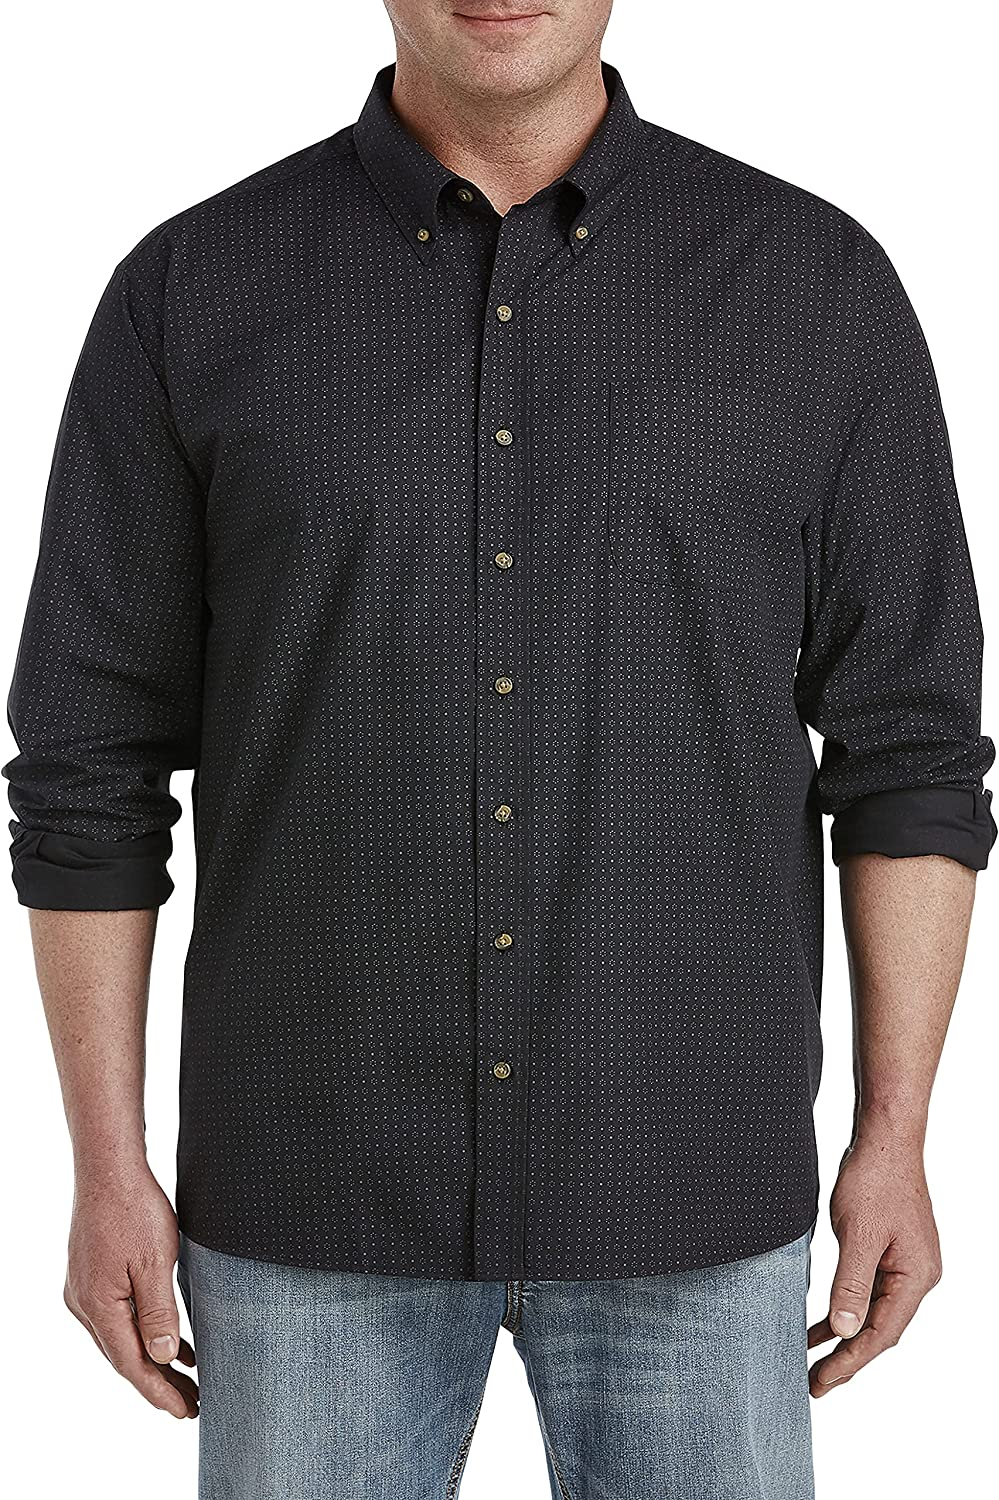 Harbor Bay by DXL Big and Tall Easy-Care Geo Print Sport Shirt, Black Grey